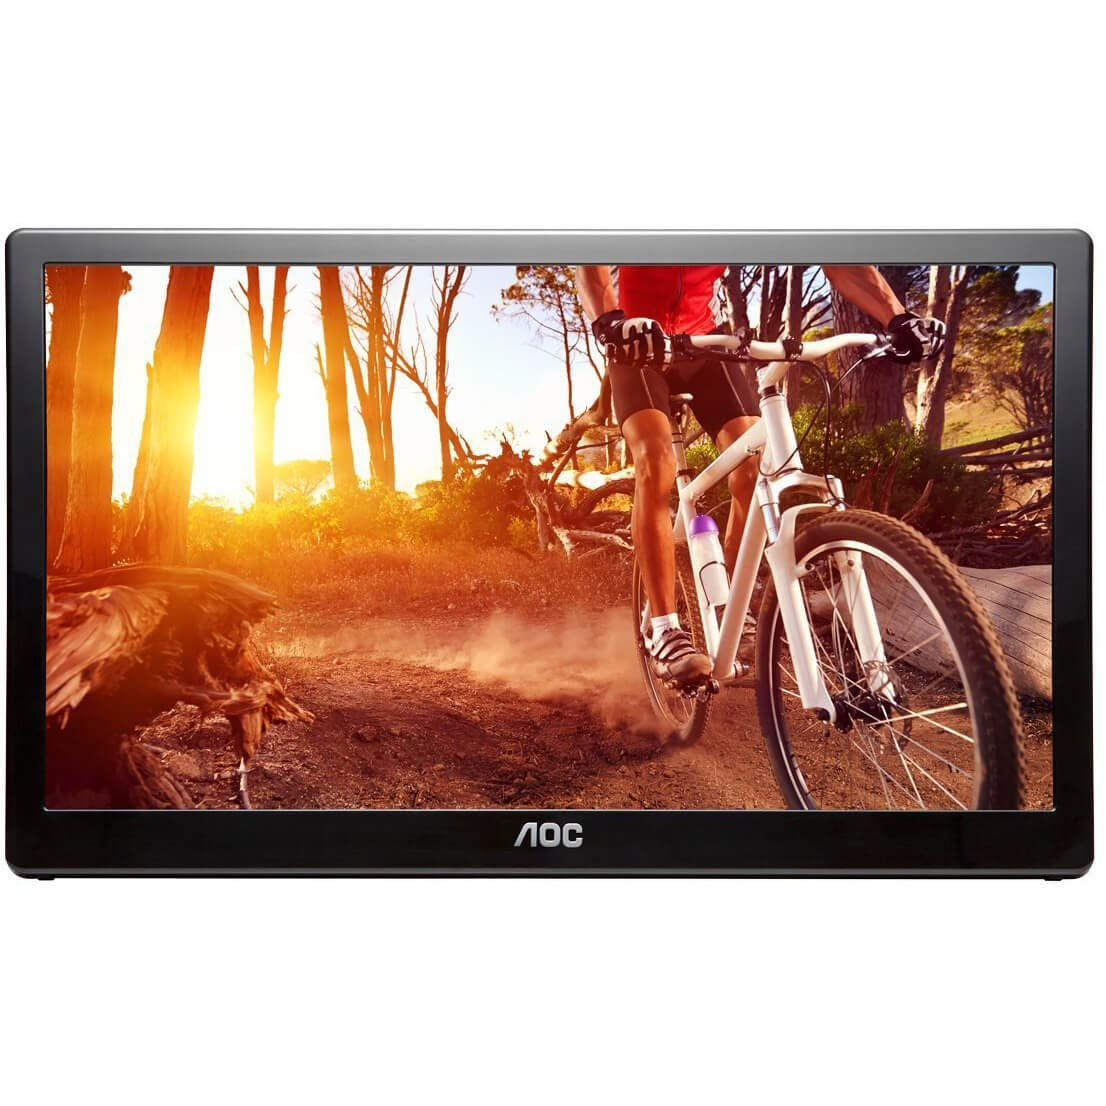 "16"" AOC E1659FWU Portable Ultra-Slim LED LCD Monitor, USB 3.0 Powered - Black (Certified Refurbished)"